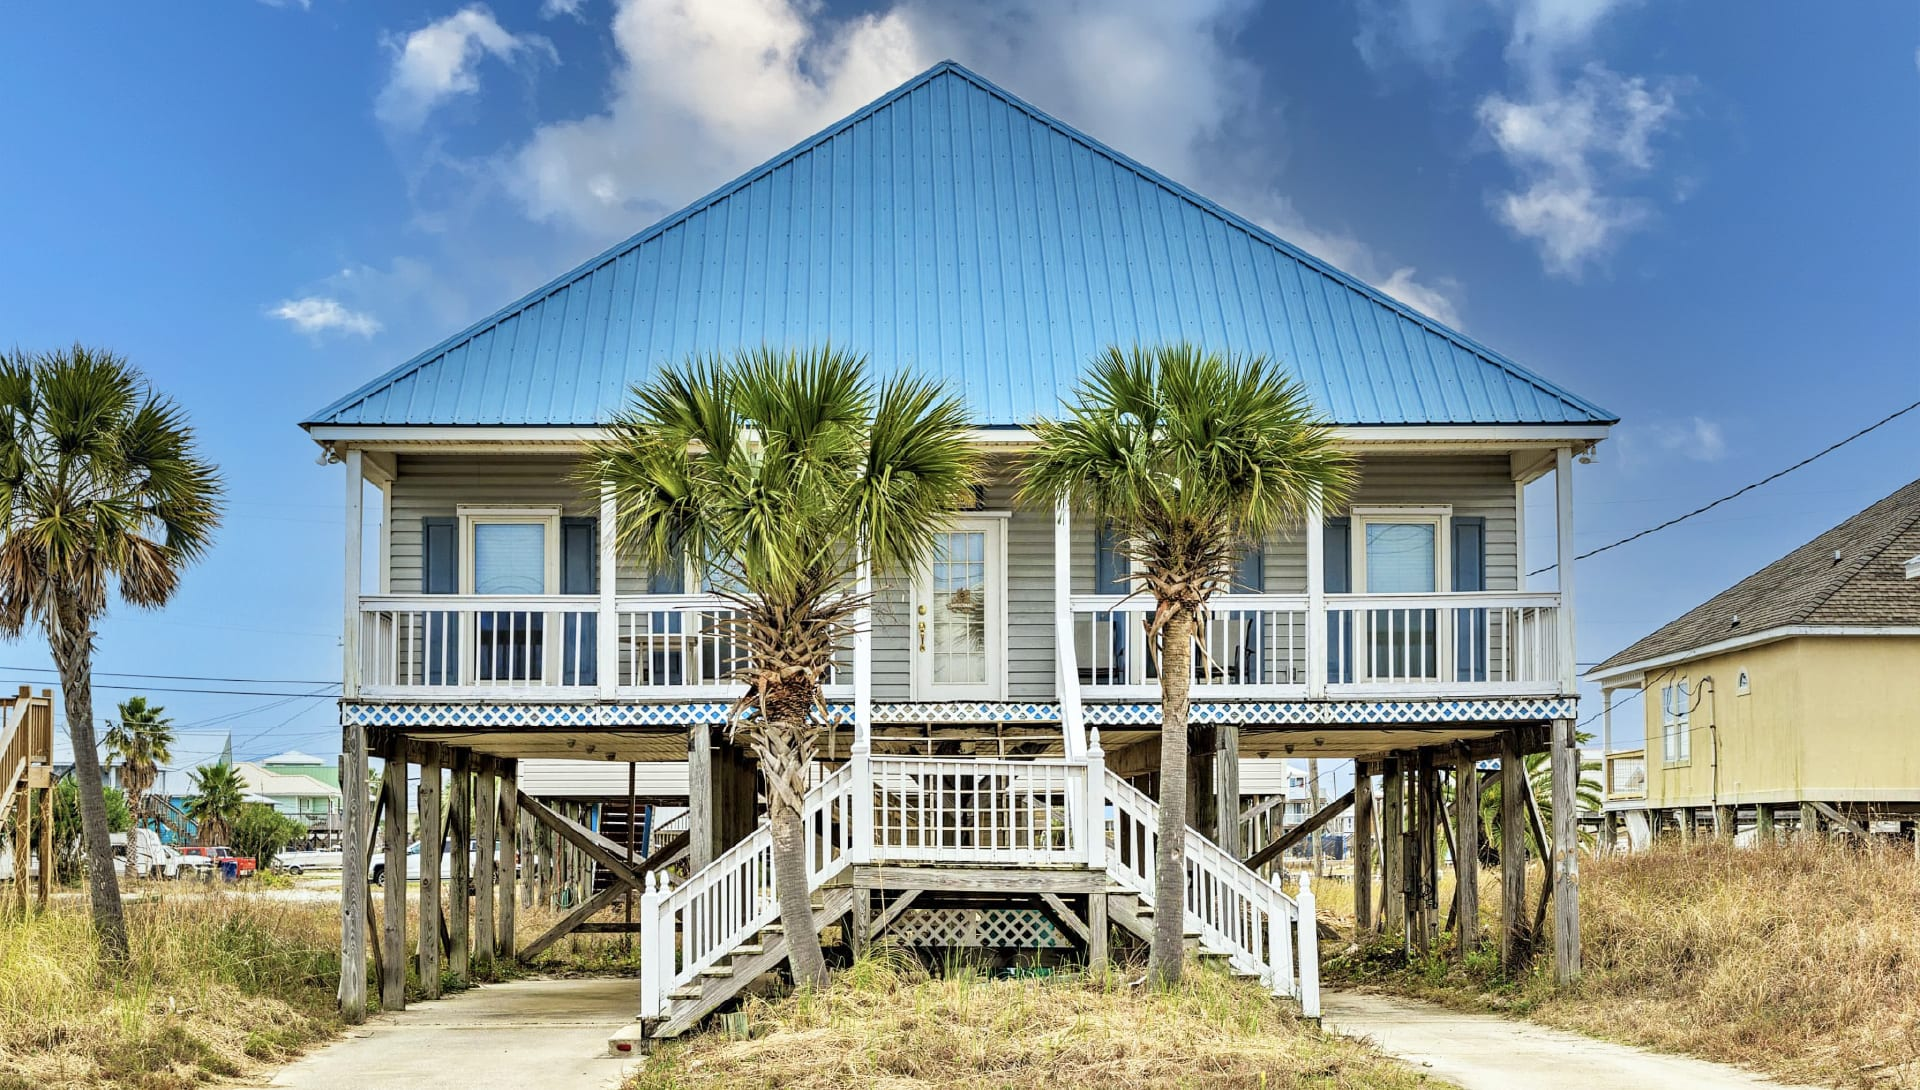 The 12 Best Places to Buy a Beach House in 2021